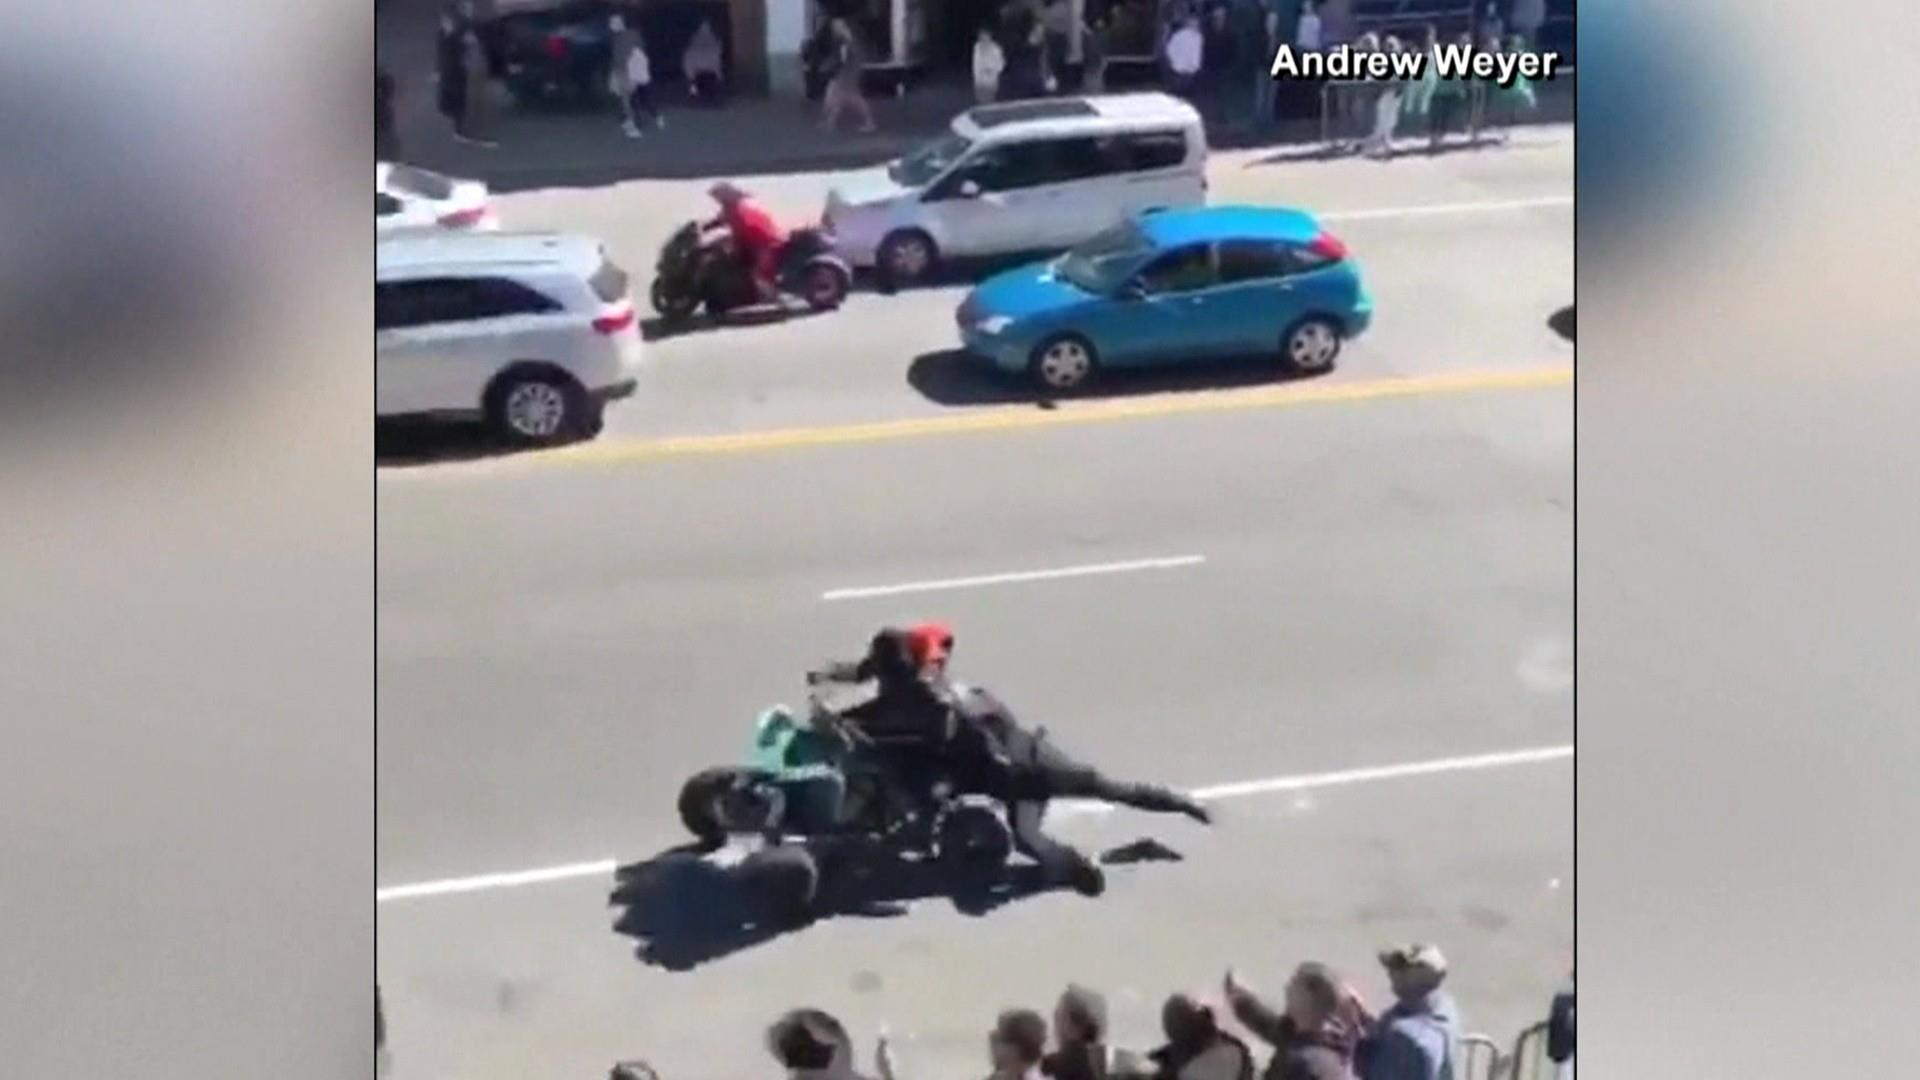 Nashville officer hospitalized after being dragged down street by ATV